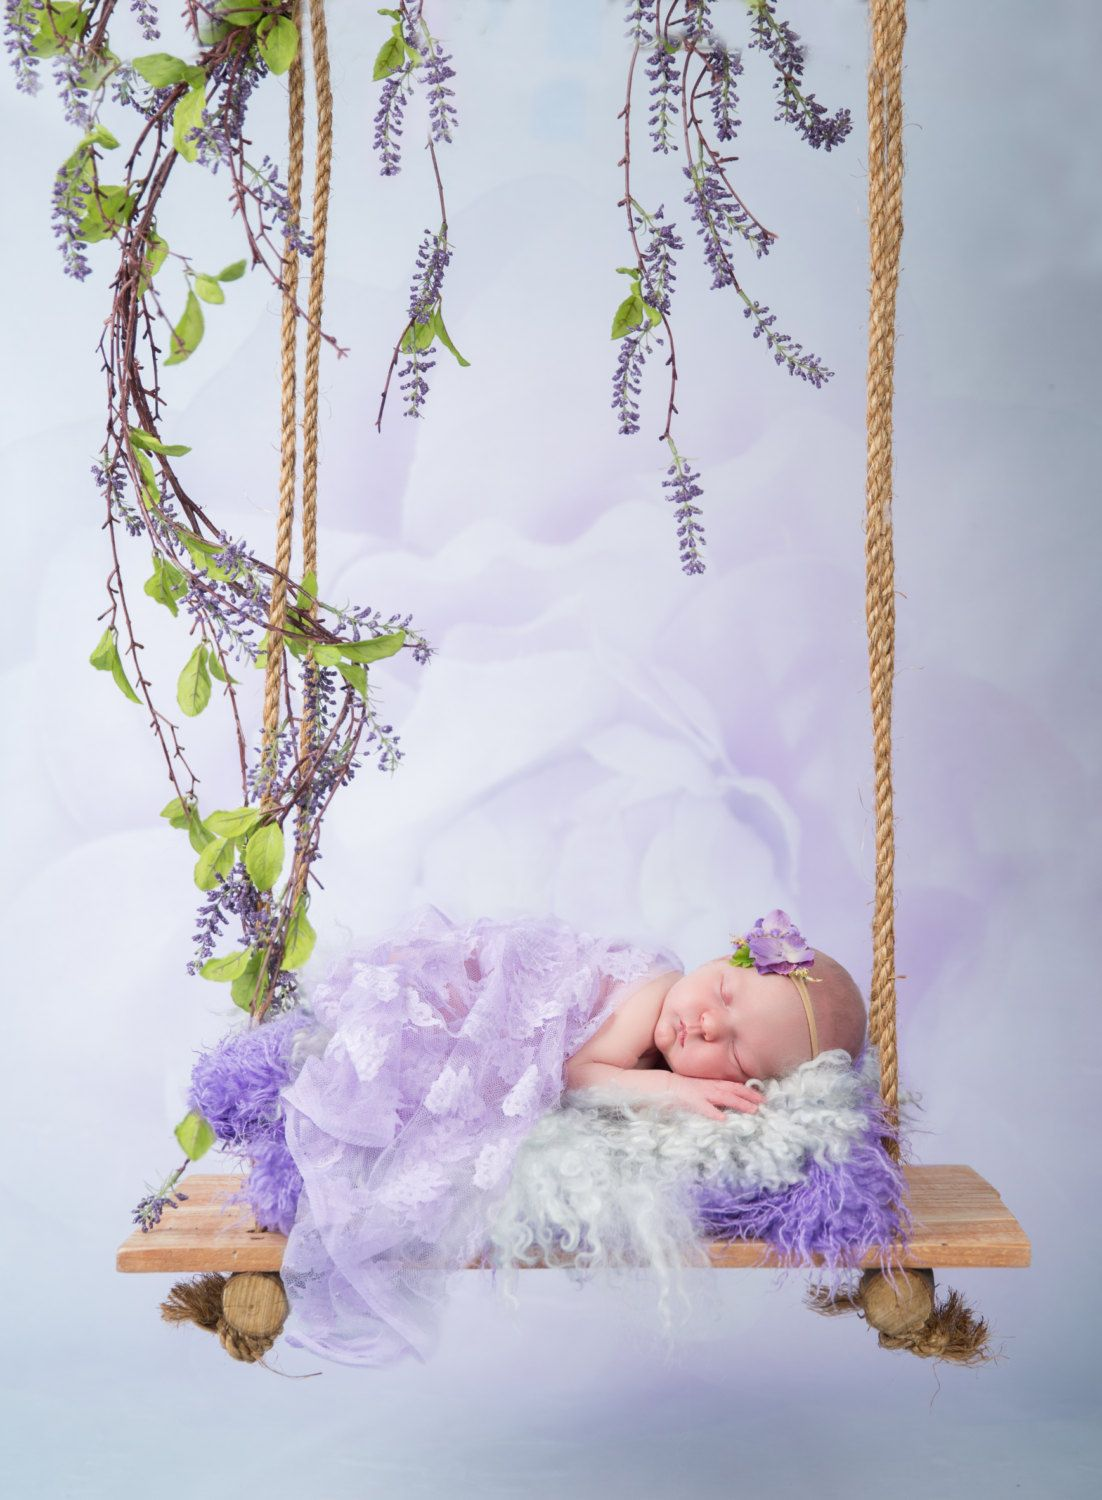 Baby swing digital backdrop for newborn photography newborn digital backdrop instant download wooden swing for newborn by svitlanavronskaart on etsy